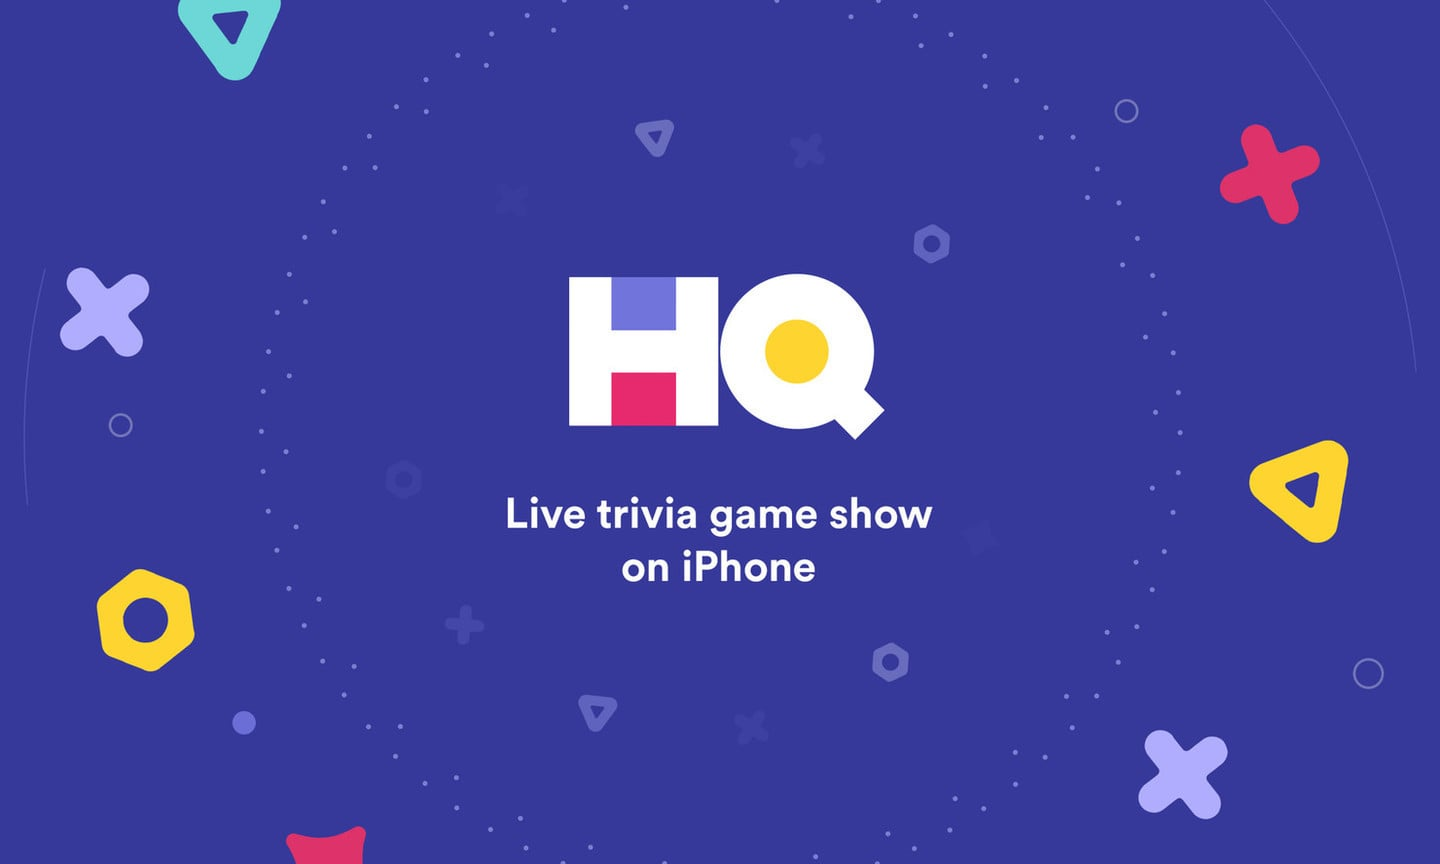 Does HQ Live Trivia Game Show Live Up To The Hype?